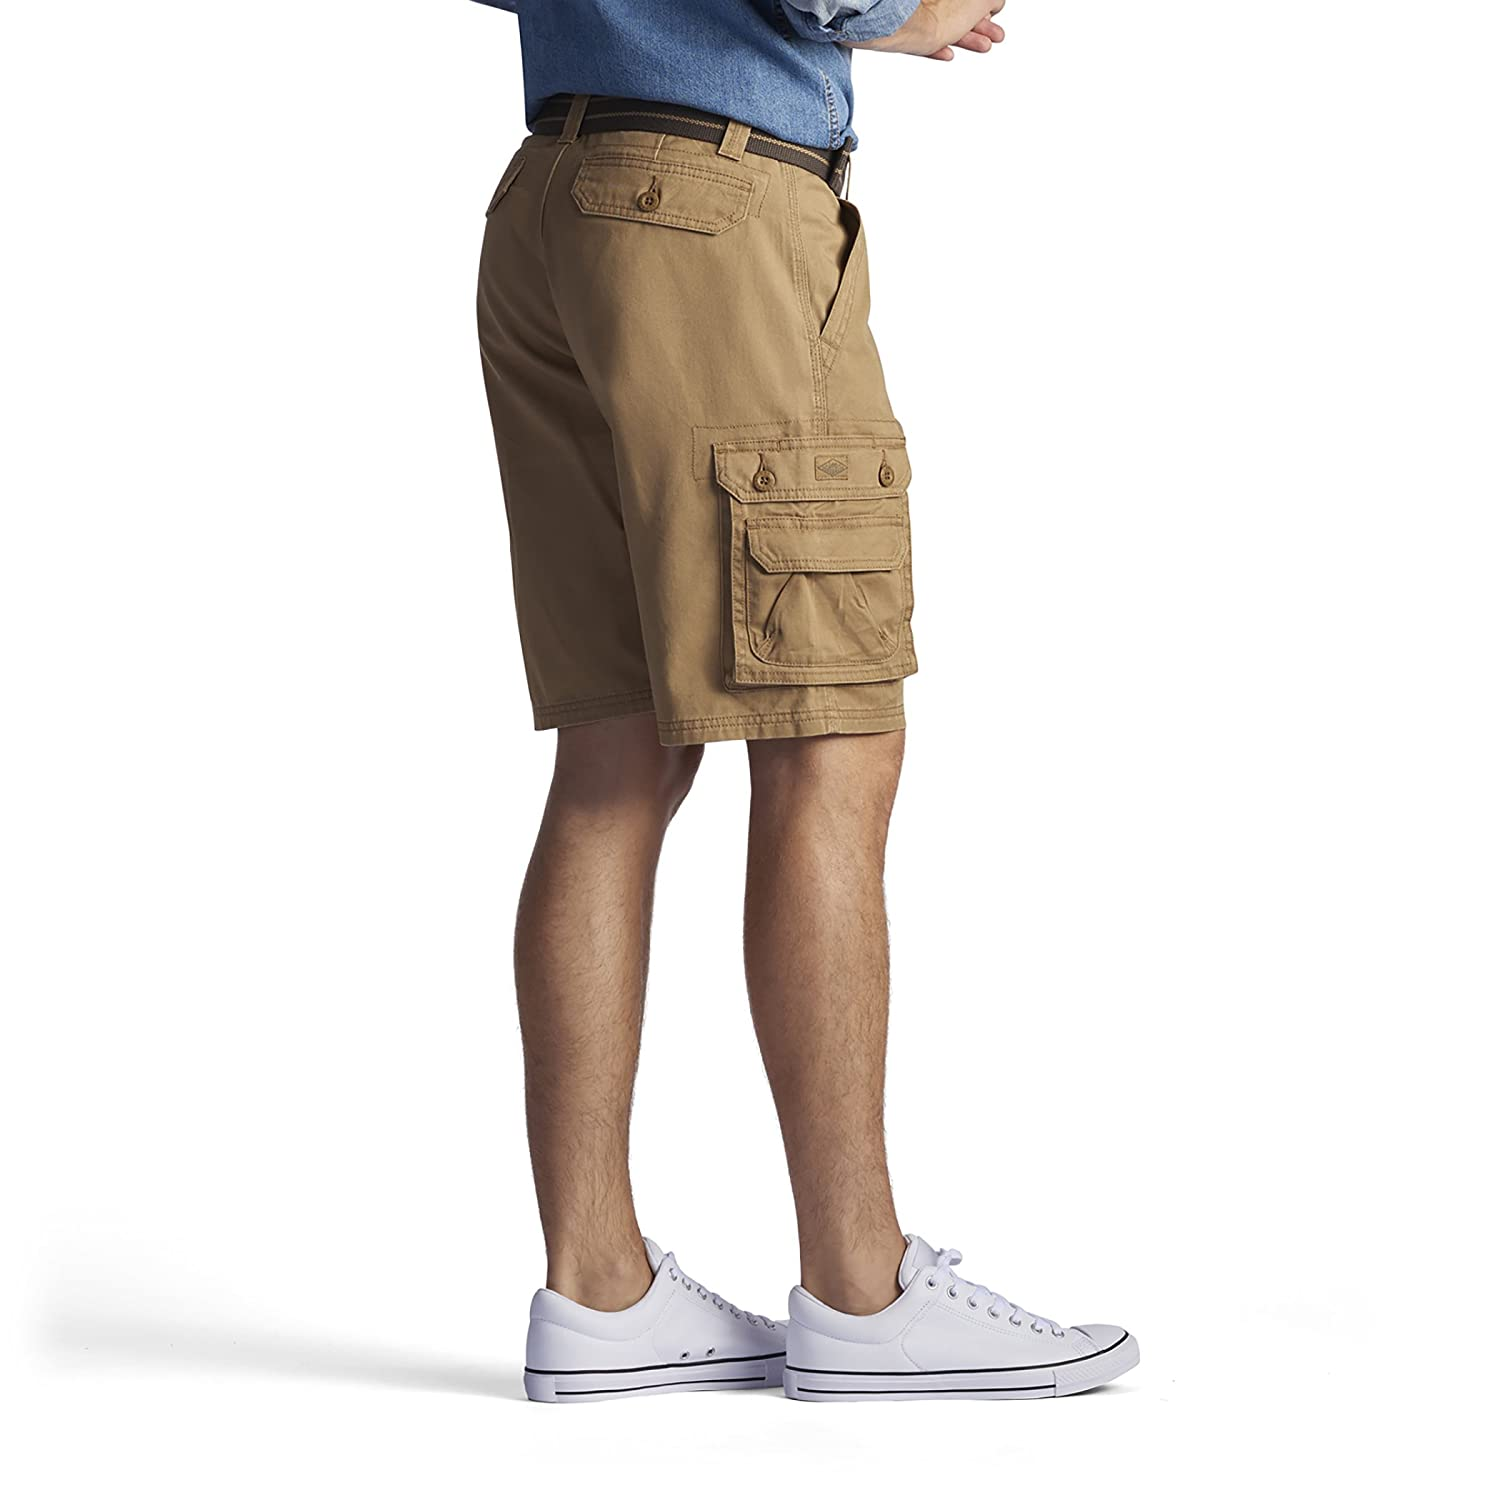 LEE Mens Dungarees New Belted Wyoming Cargo Short